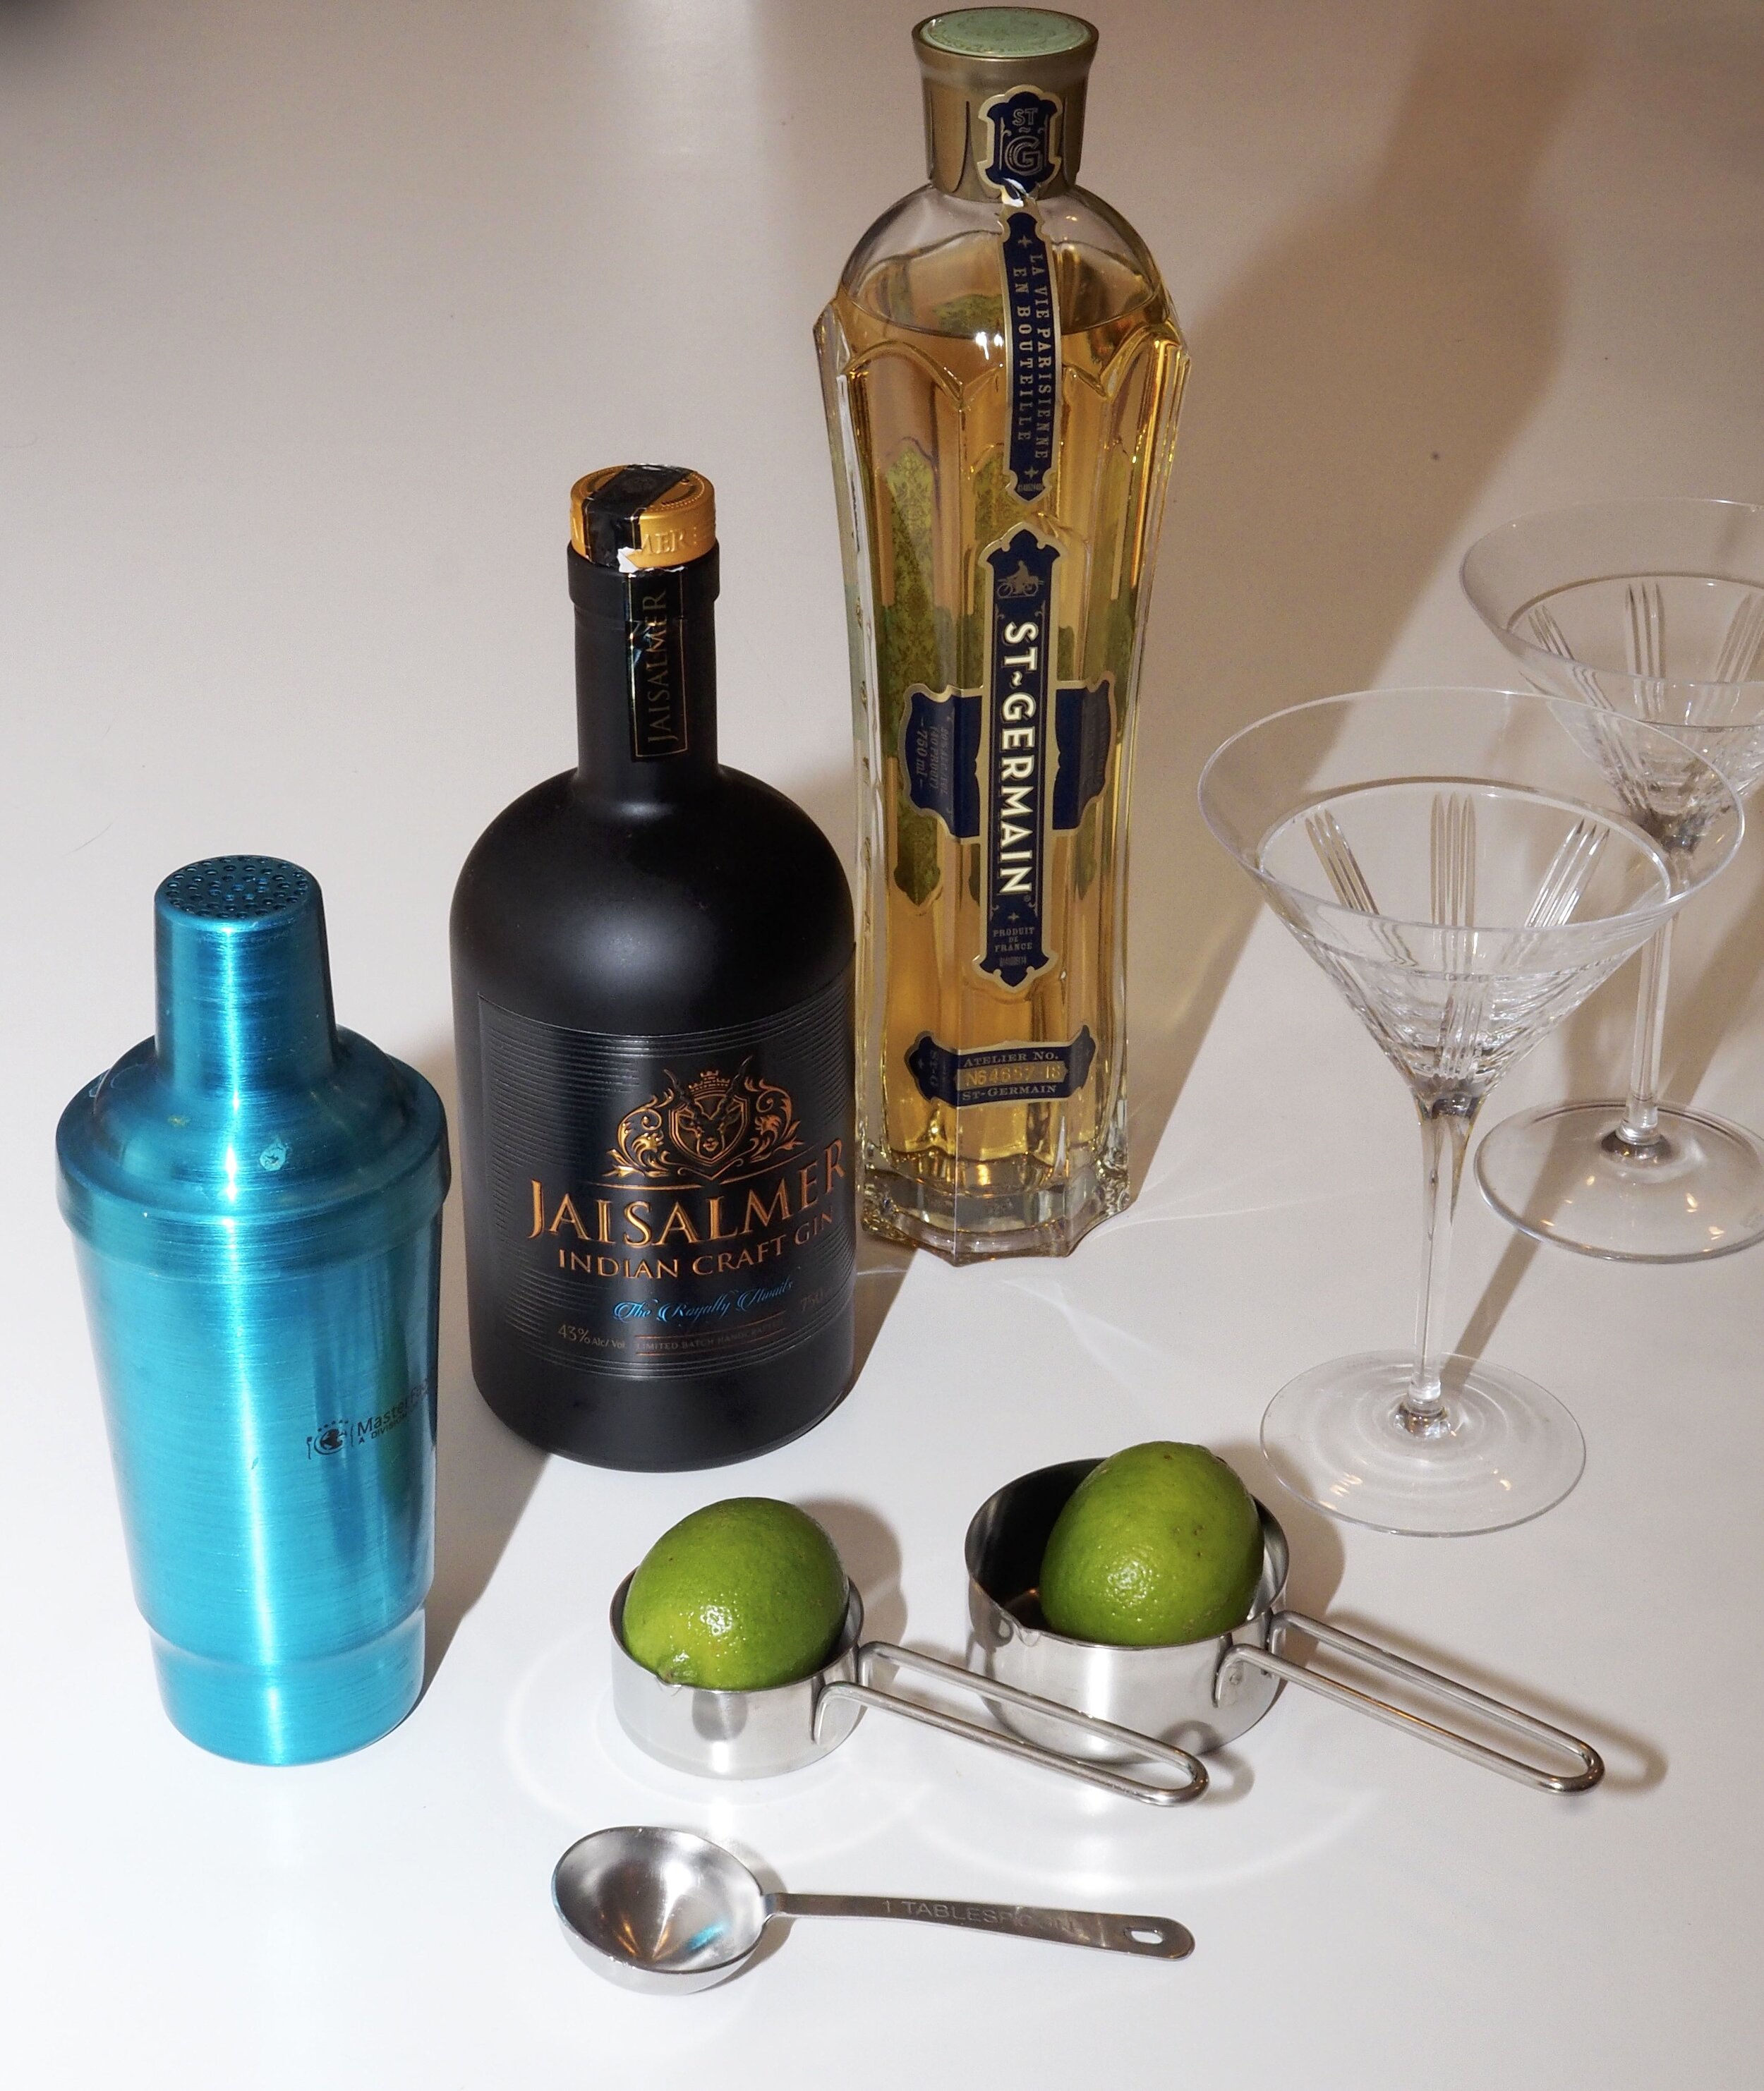 spiritedtable_JISALMER_IndianCraftGin_FrenchGimlet_photo6.jpg